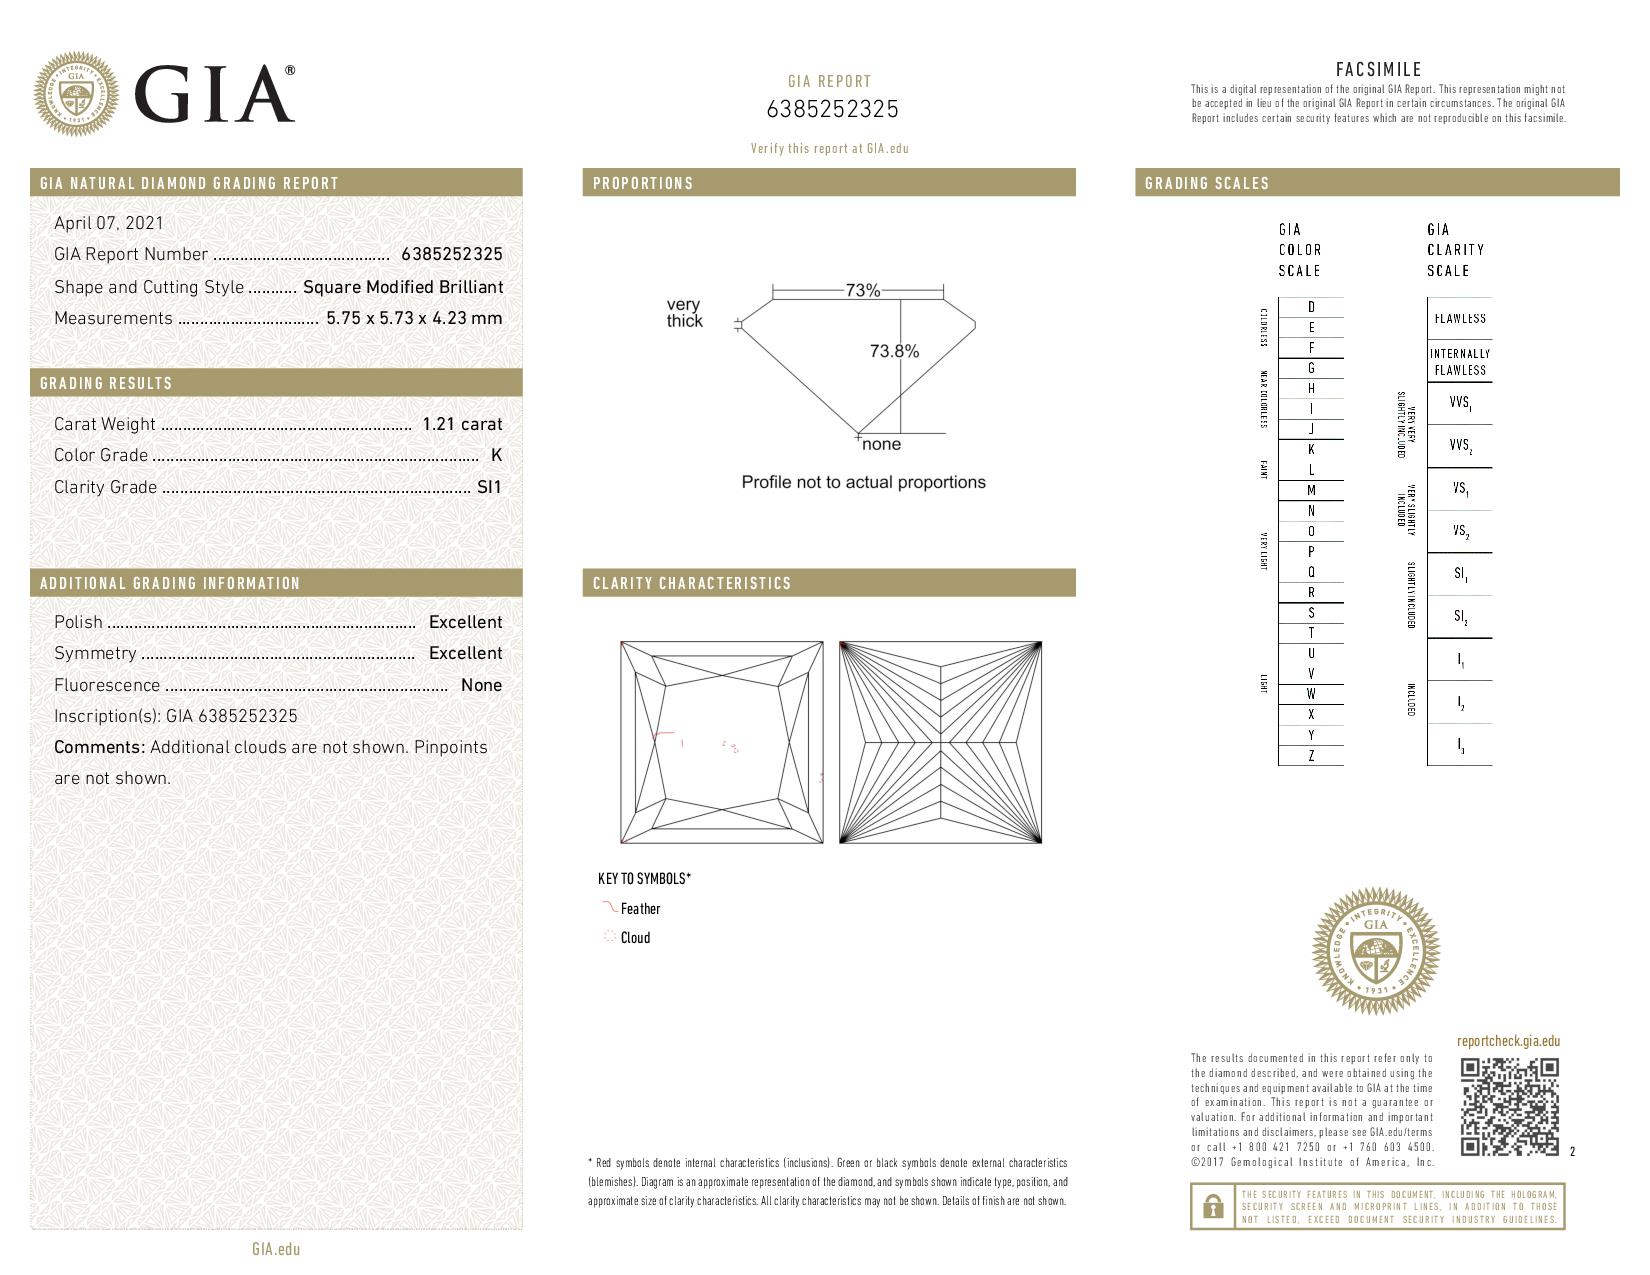 This is a 1.21 carat princess shape, K color, SI1 clarity natural diamond accompanied by a GIA grading report.